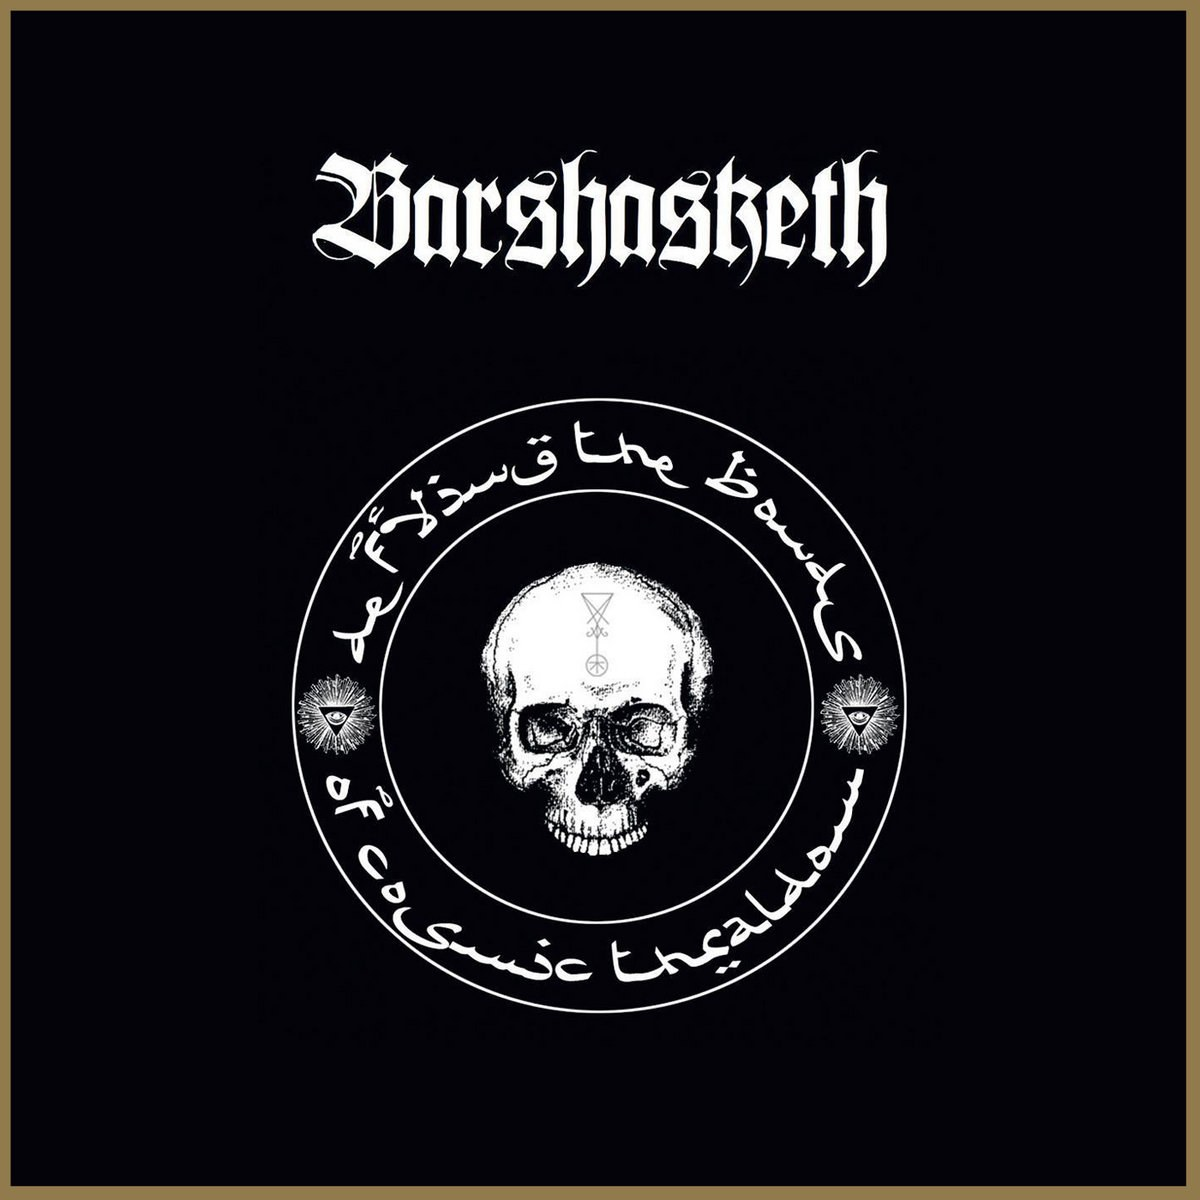 Review for Barshasketh - Defying the Bonds of Cosmic Thraldom